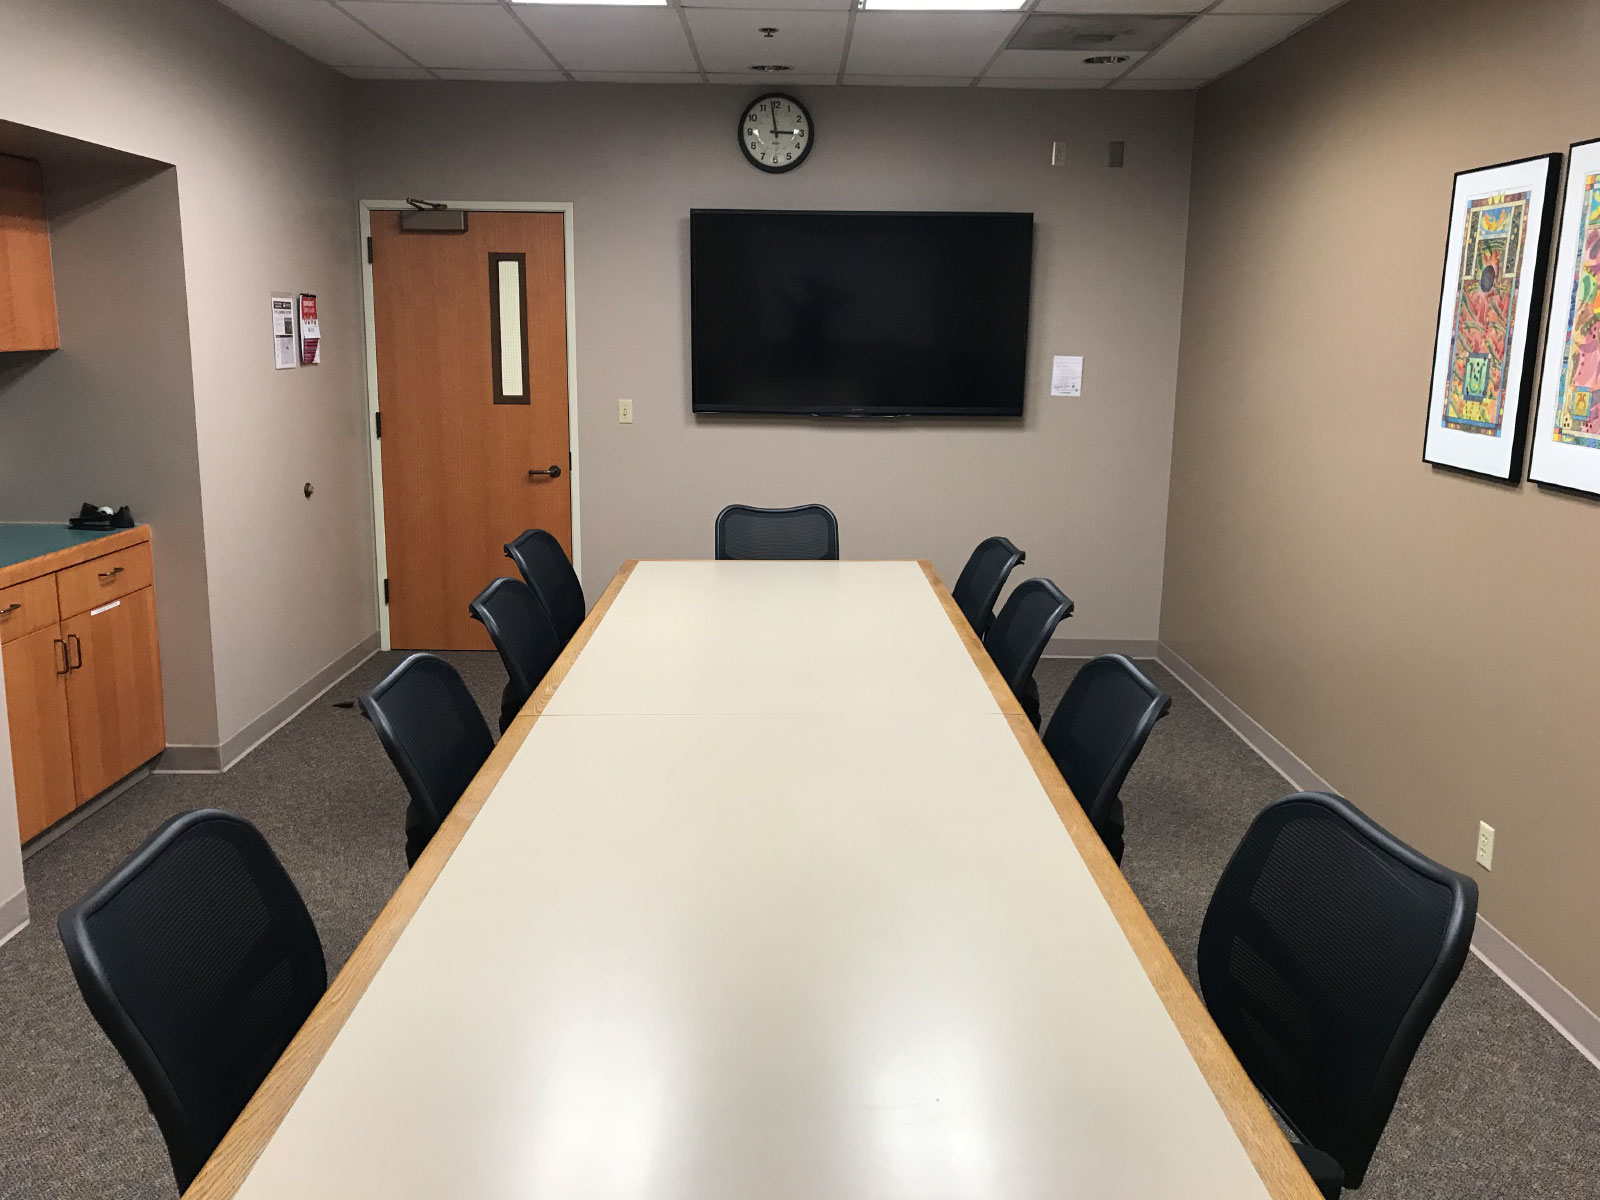 A long table with several chairs in a conference room with a TV display on the Oregon City campus